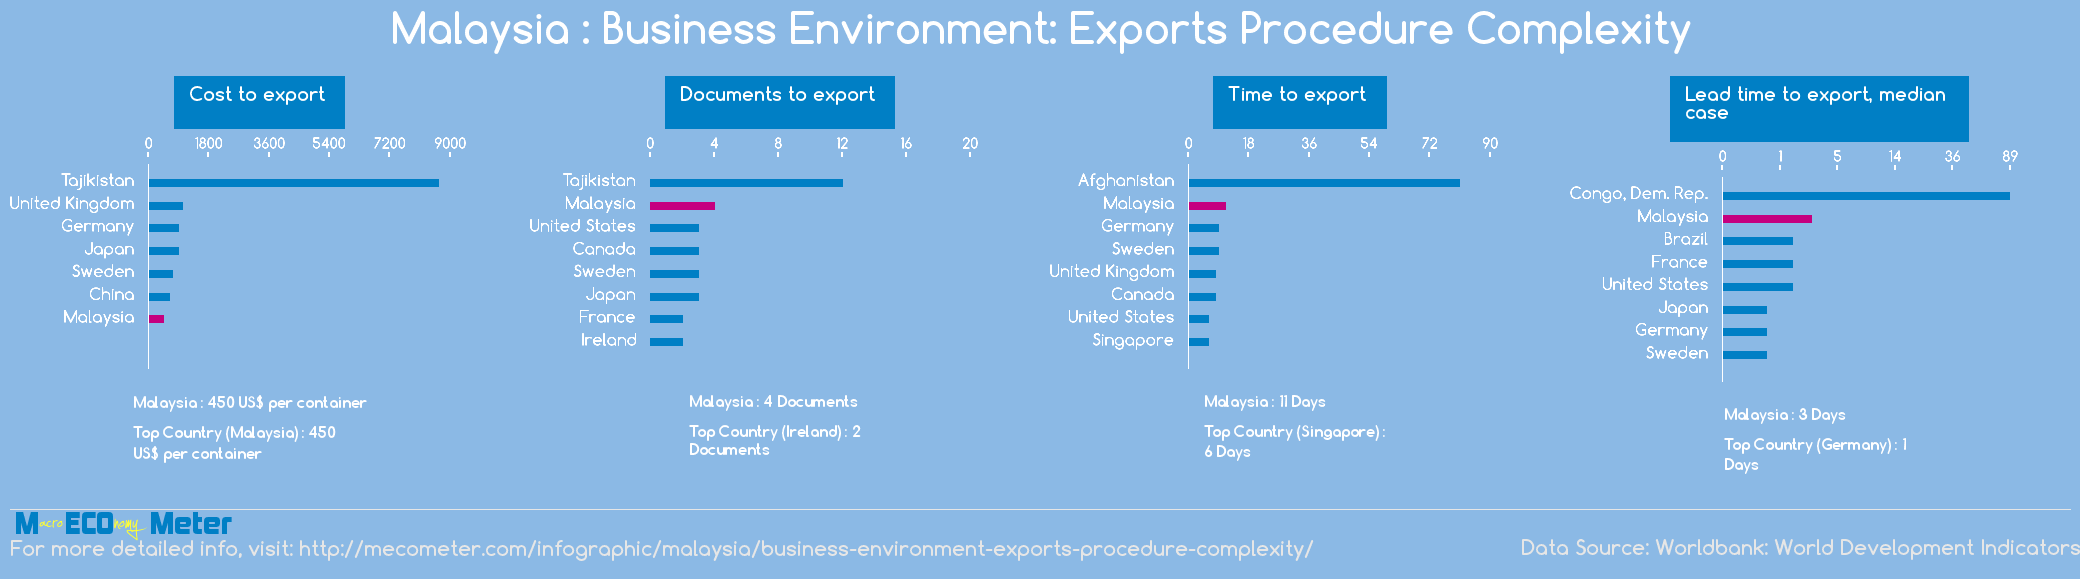 Malaysia : Business Environment: Exports Procedure Complexity